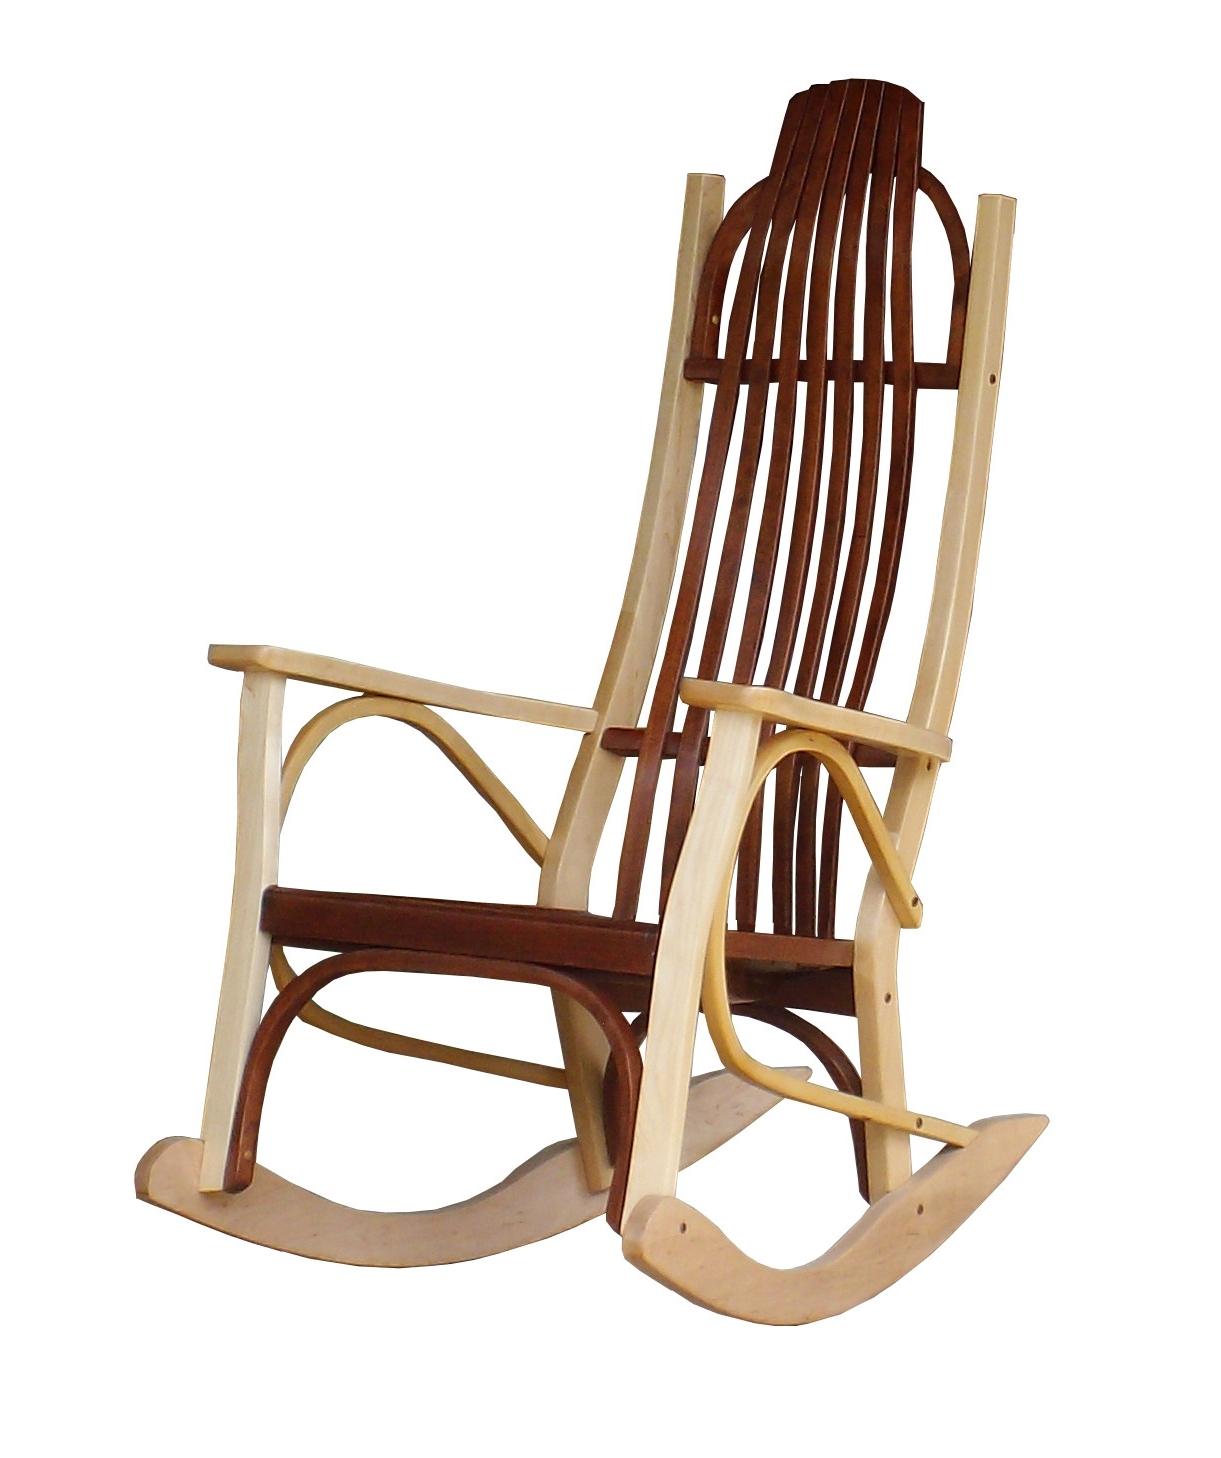 Amazon Rocking Chairs Regarding Favorite Contemporary Rocking Chair Popular Cherry And Maple Wood In 11 (Gallery 11 of 20)